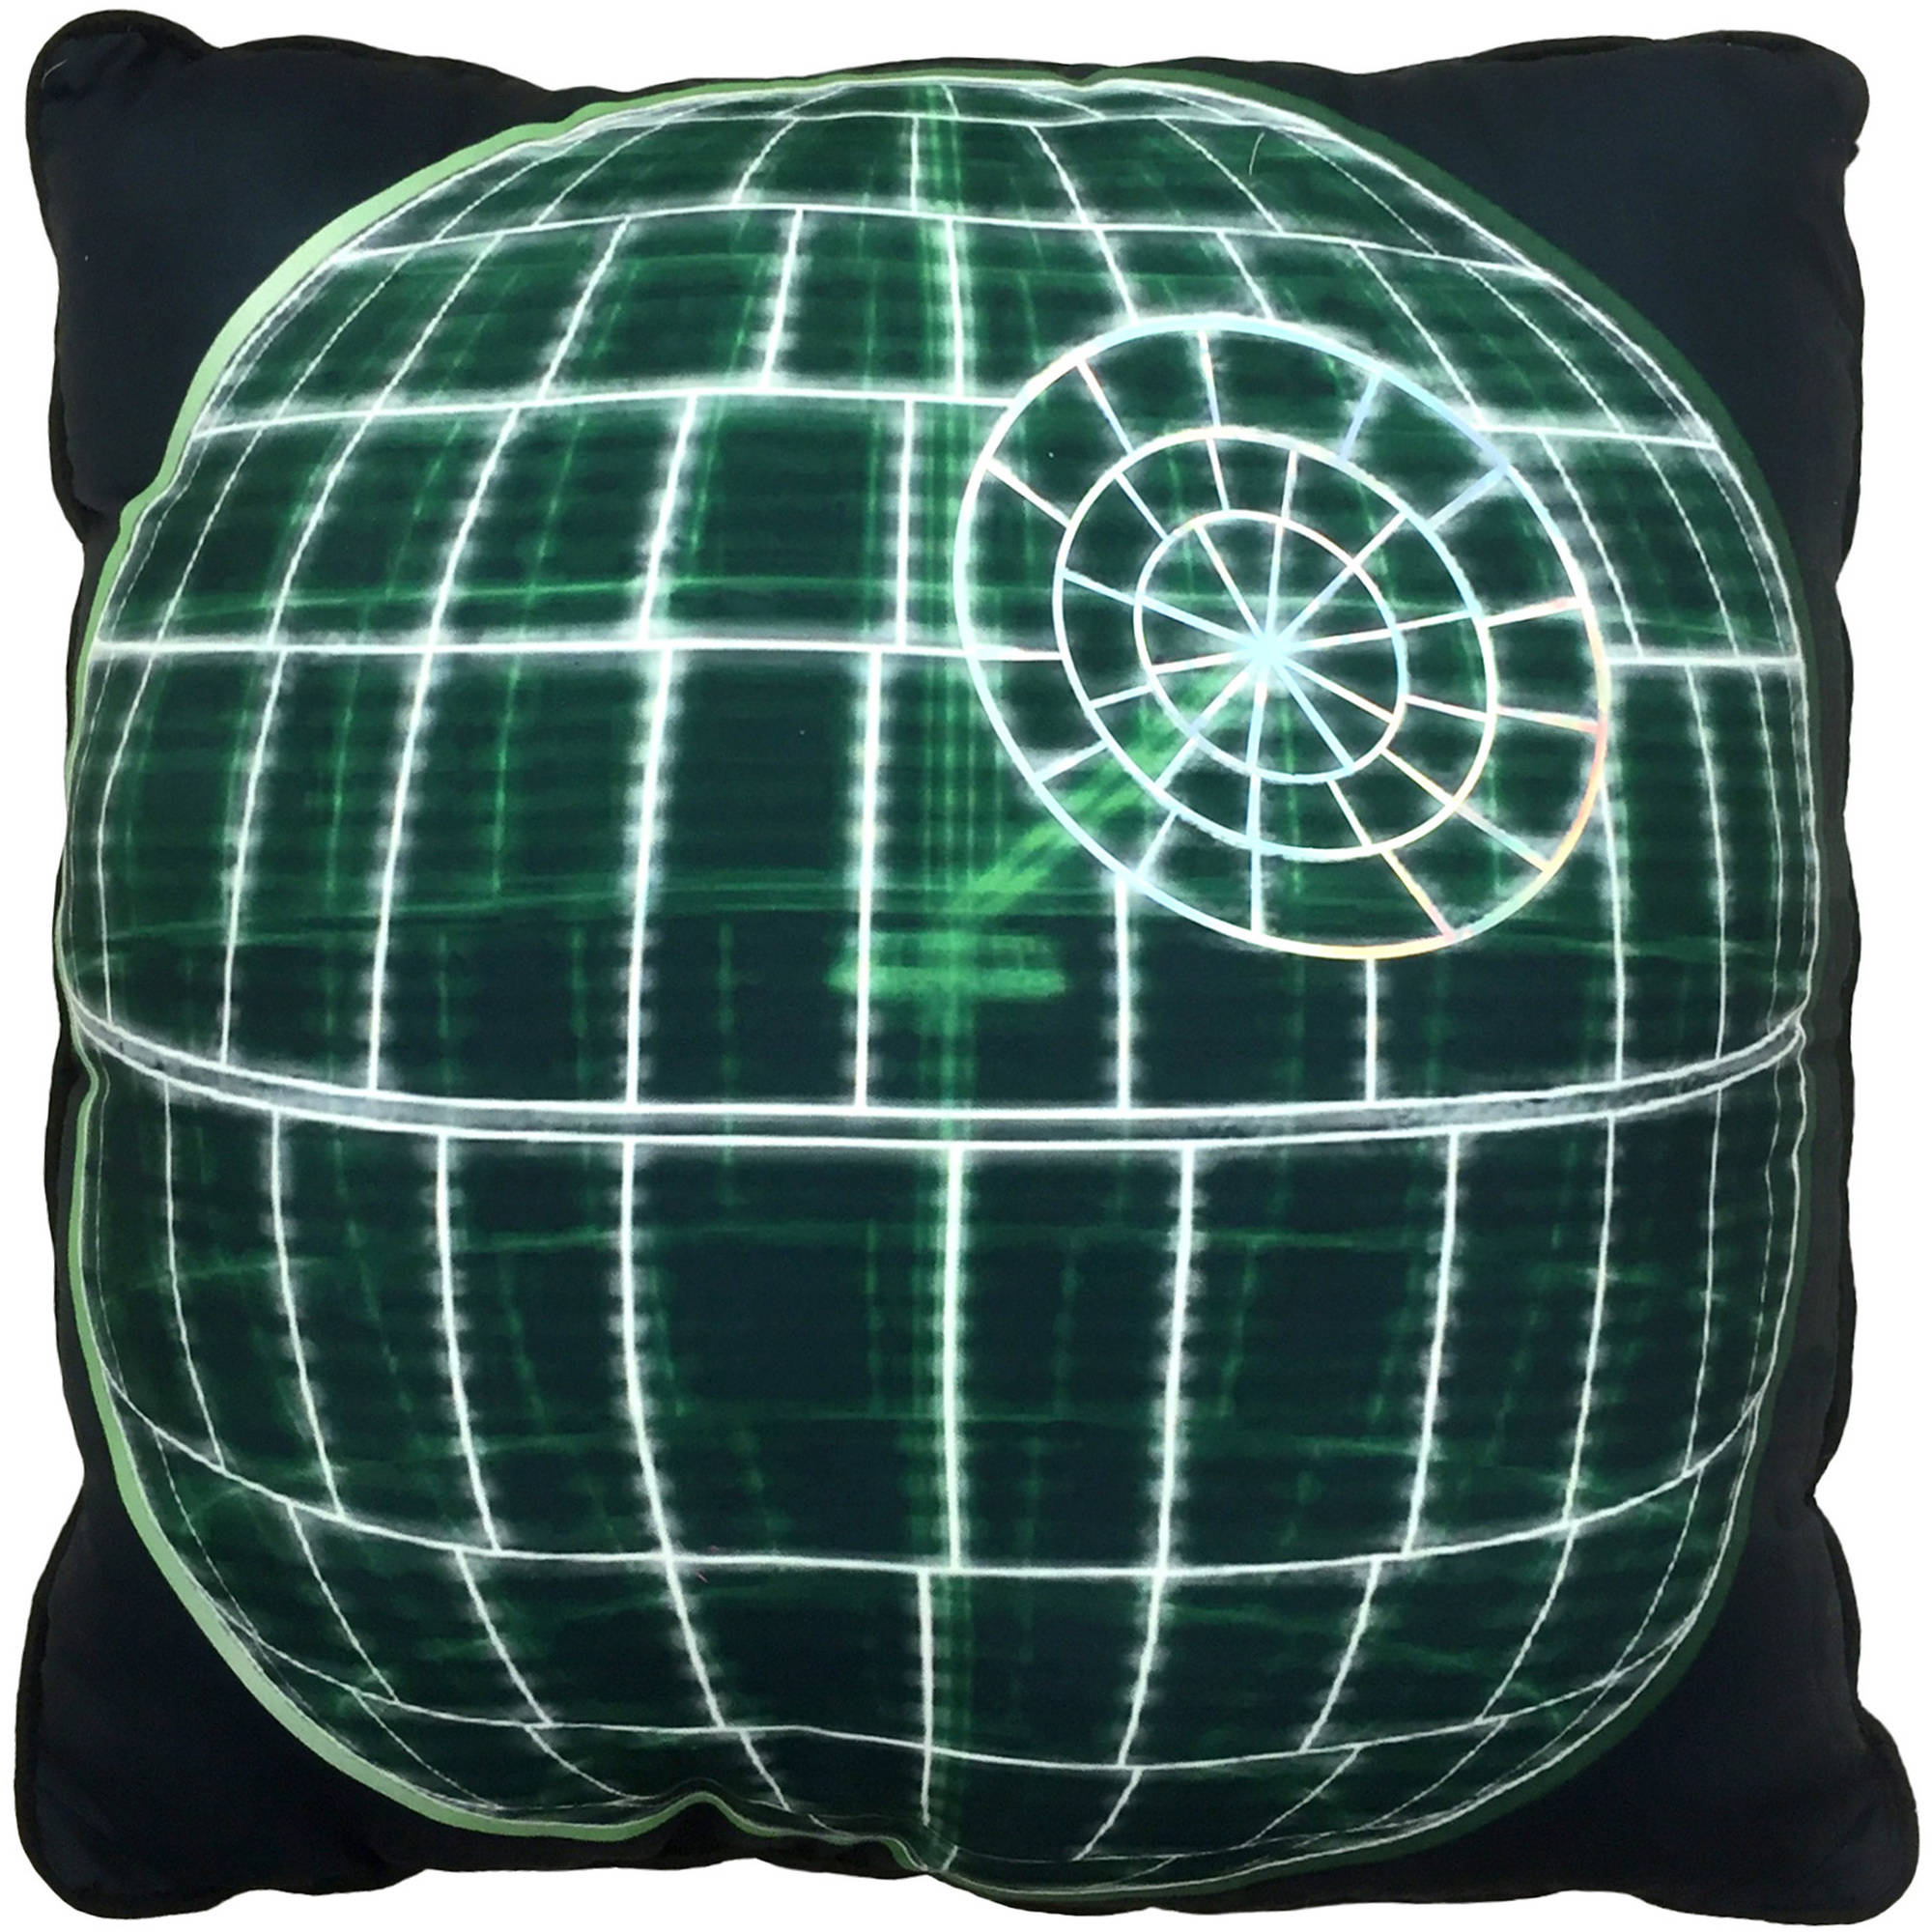 Star Wars Rogue una muerte estrella de Scan almohadilla decorativa + Star en Veo y Compro